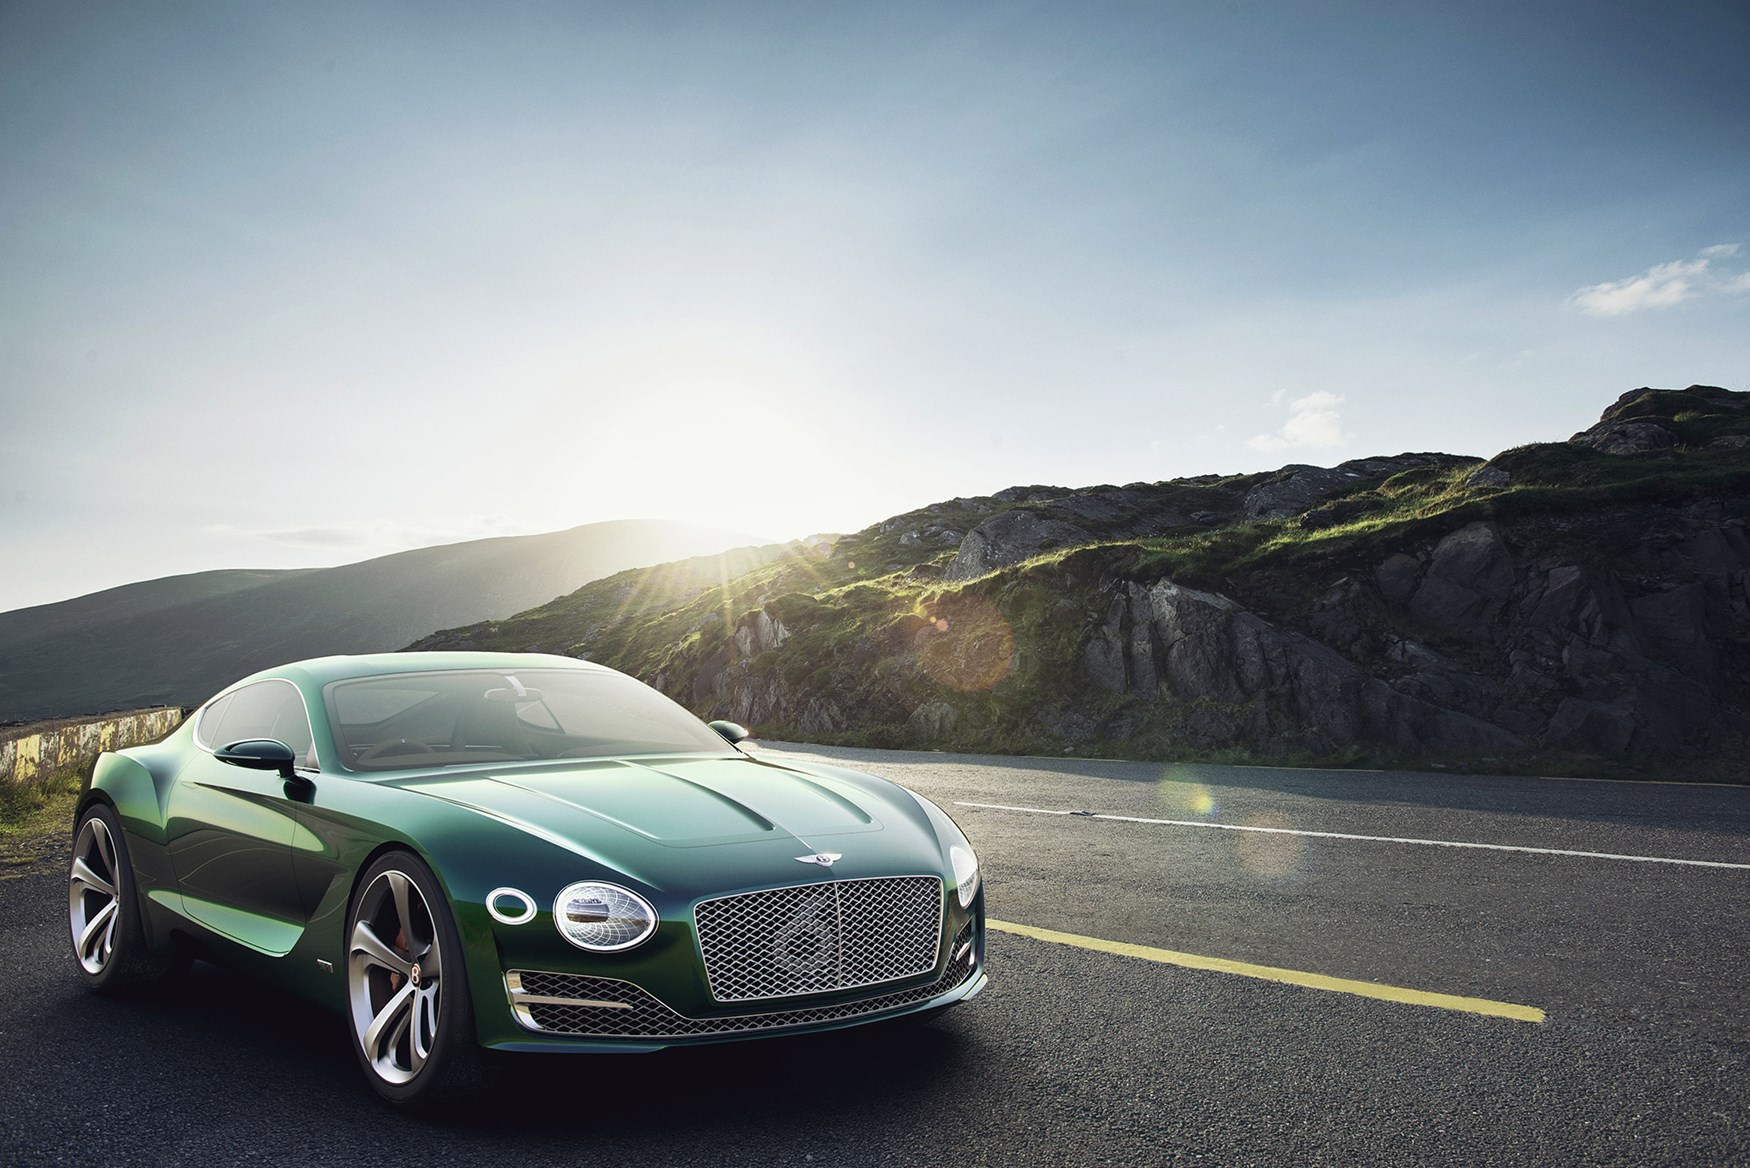 Even The Exhausts Have Had A Makeover On New Bentley Concept Car